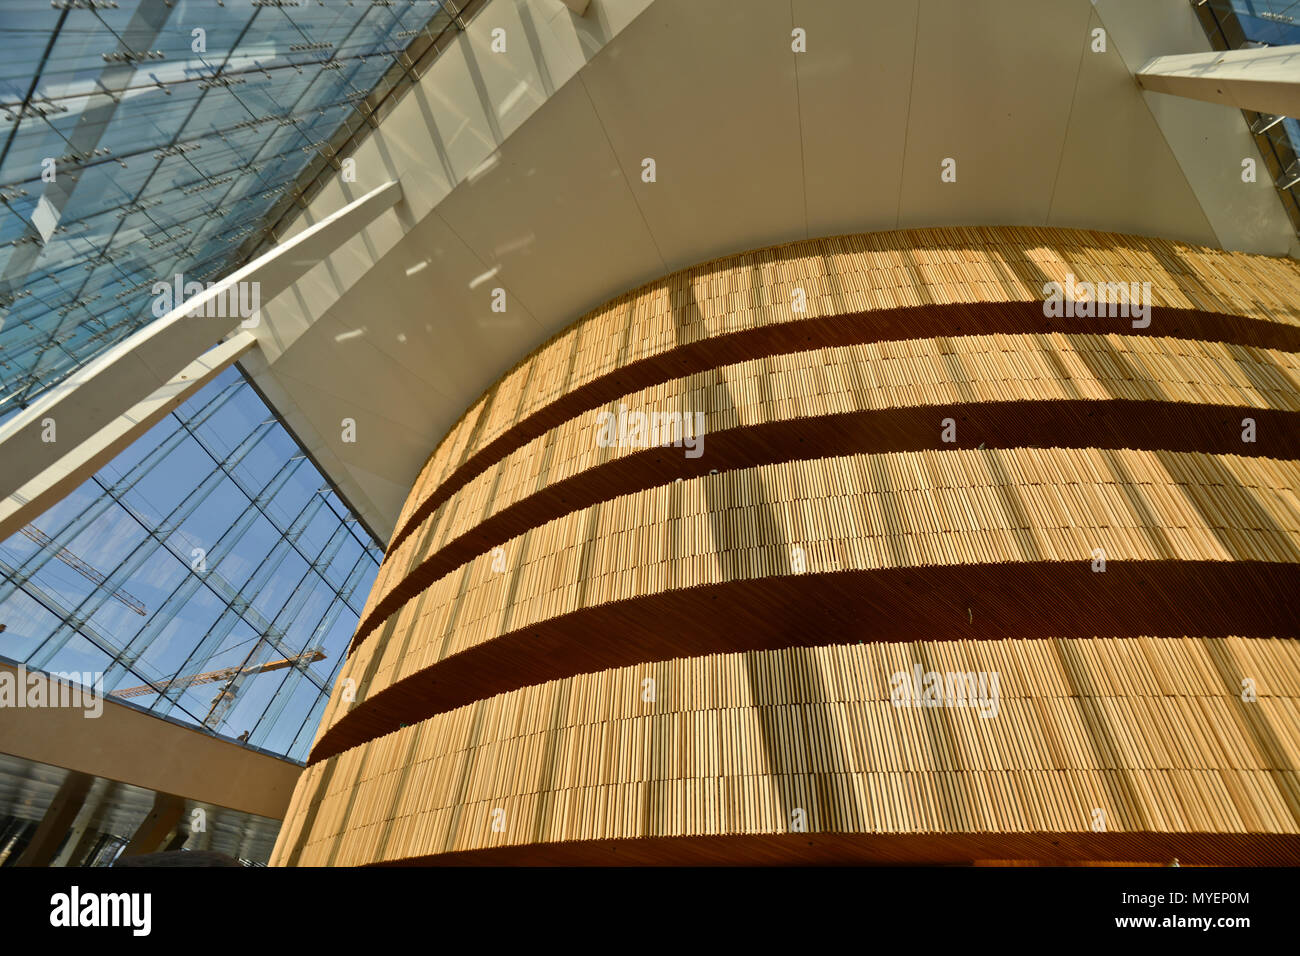 Oslo Opera House, detail from the interior, Norway - Stock Image